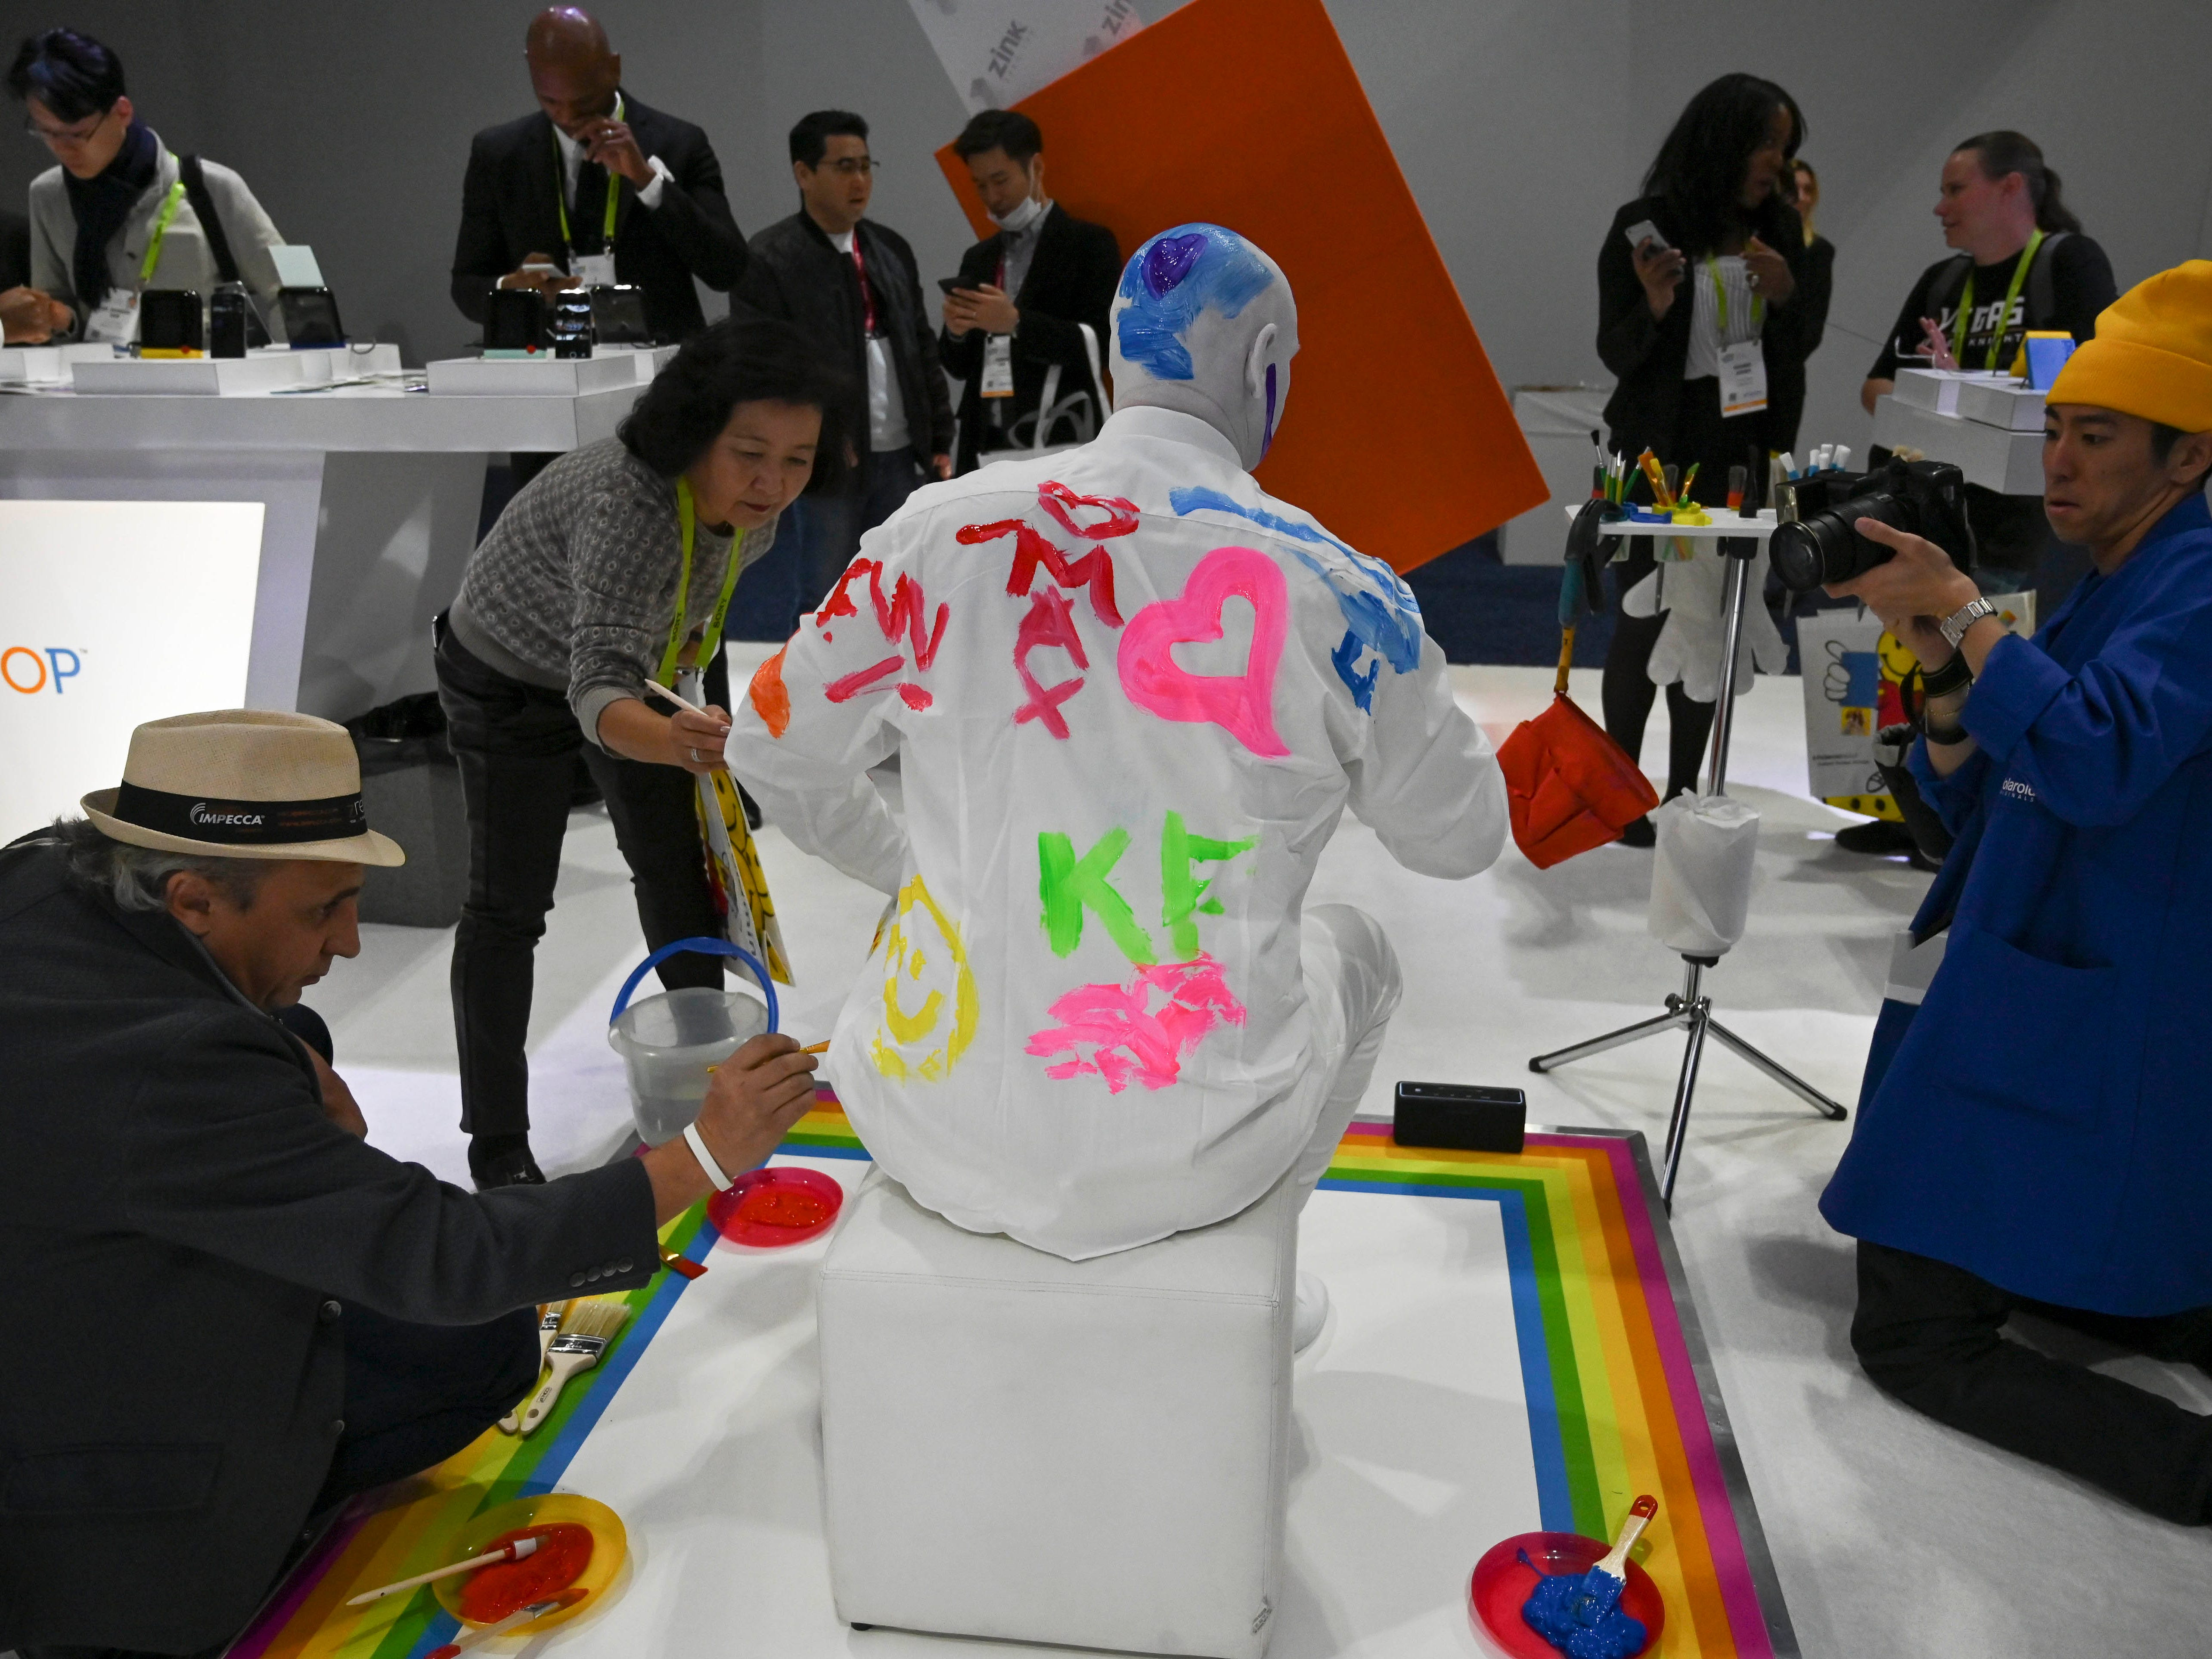 A model is painted at the Polaroid display.